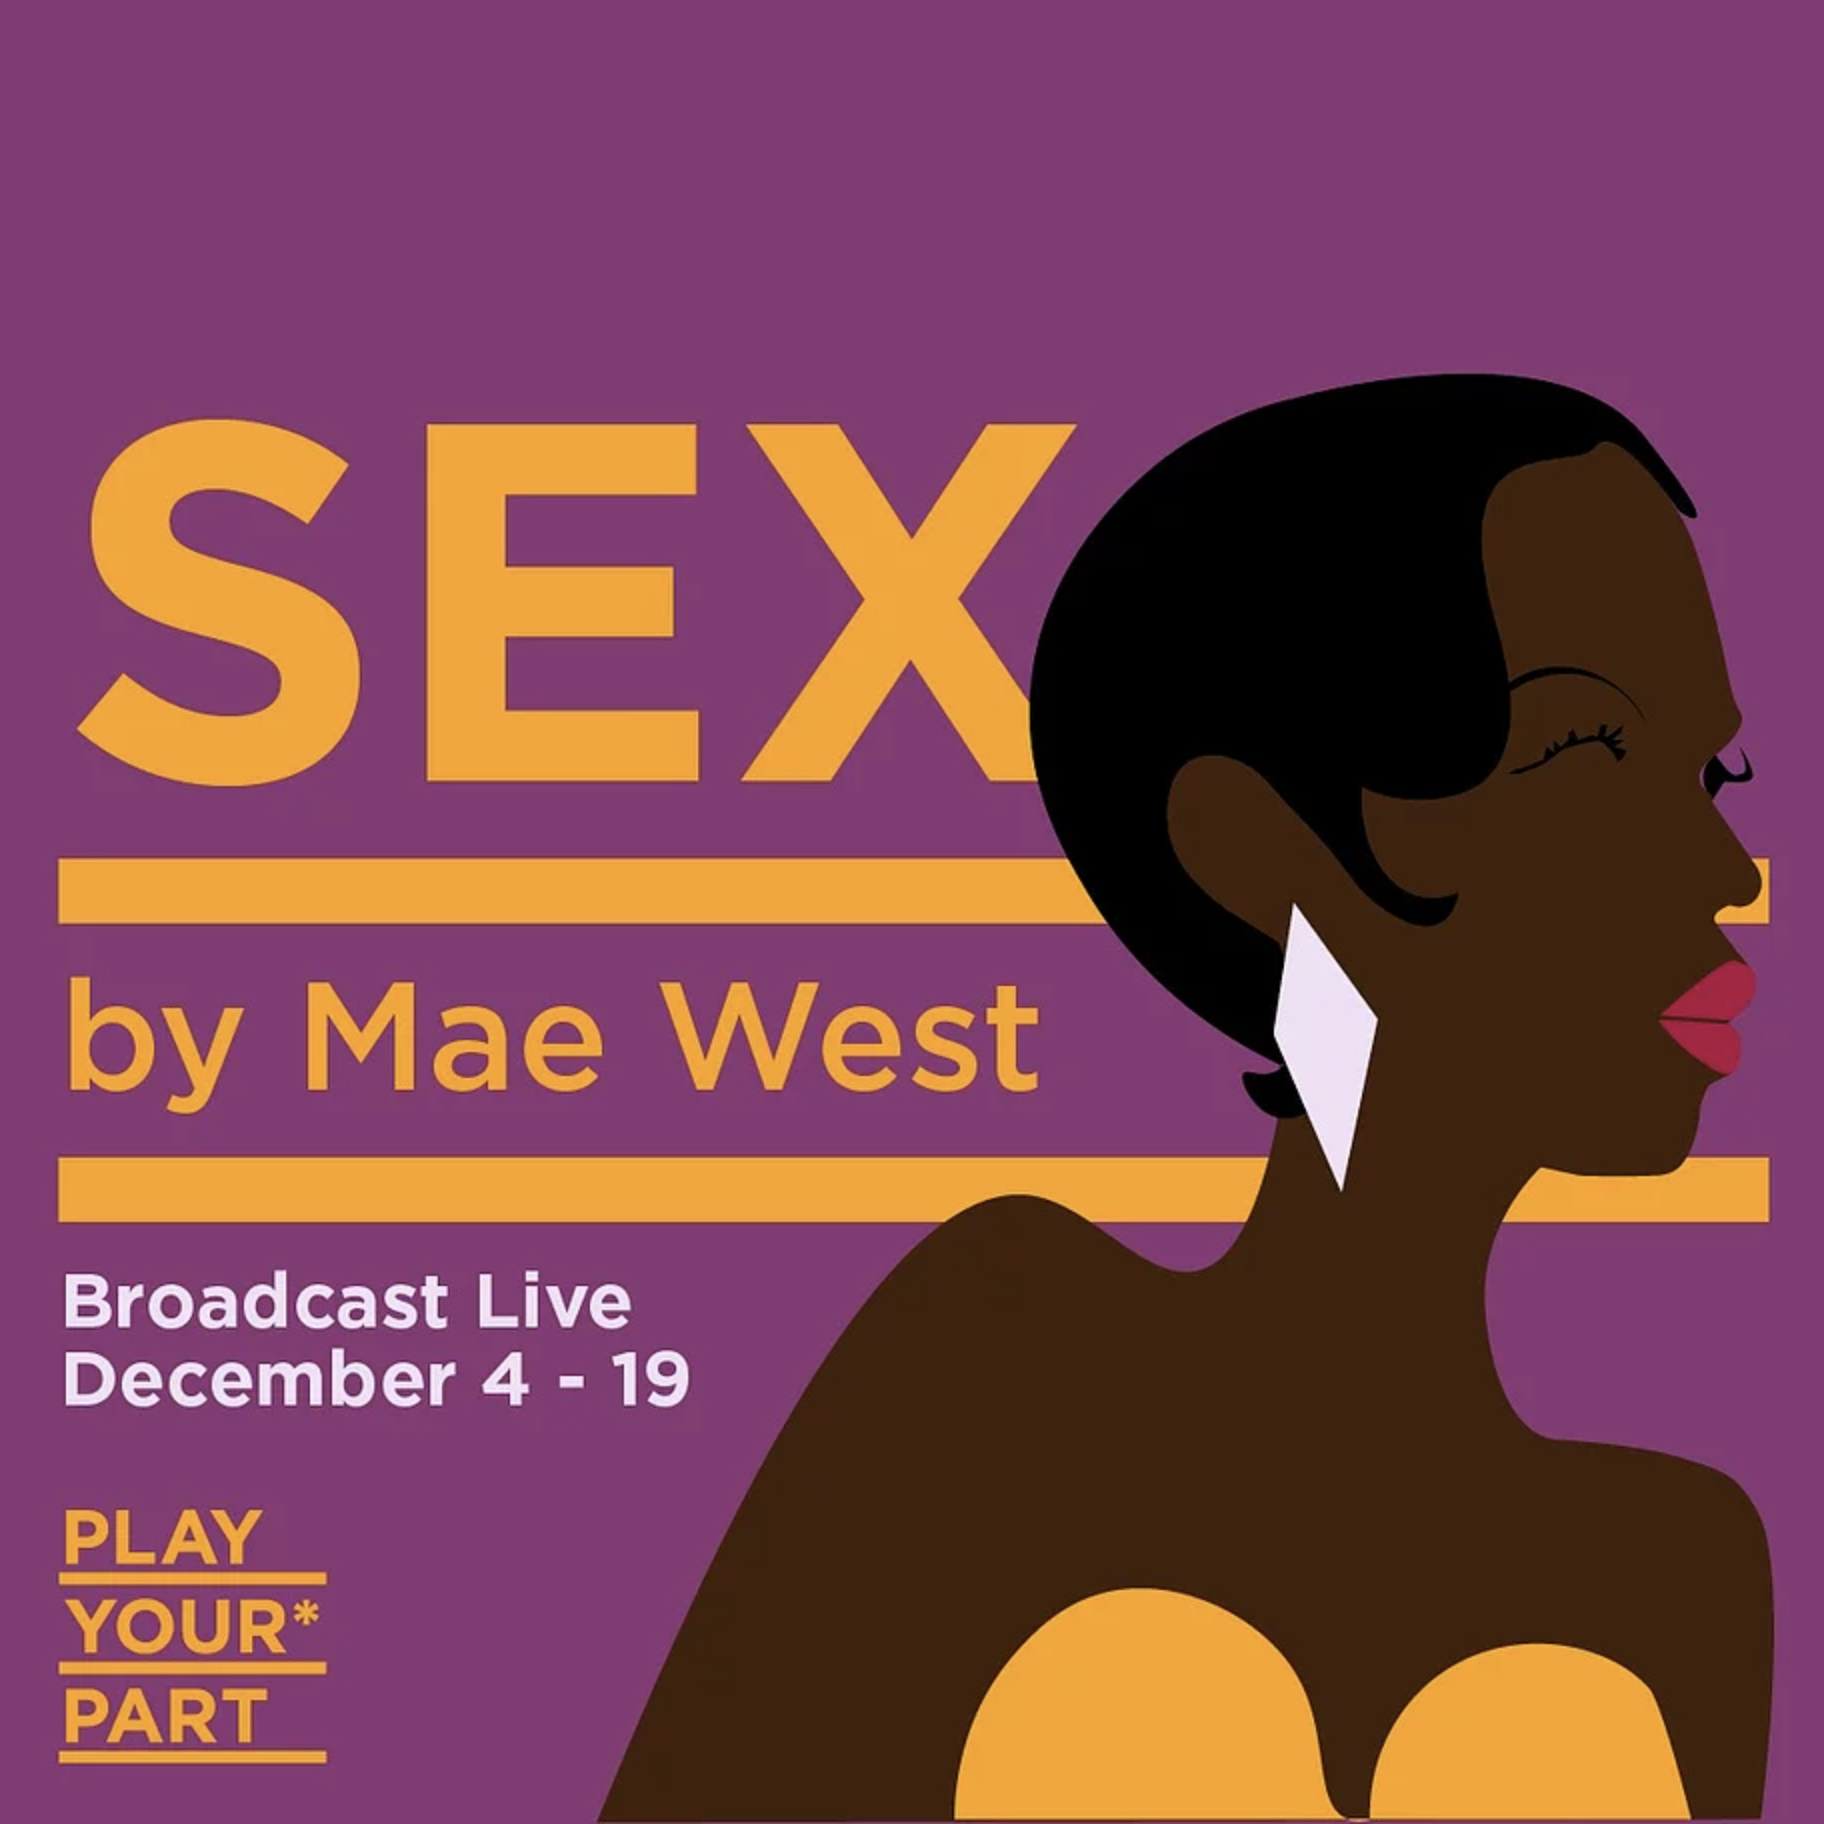 SEX by MAE WEST PLAY YOUR PART